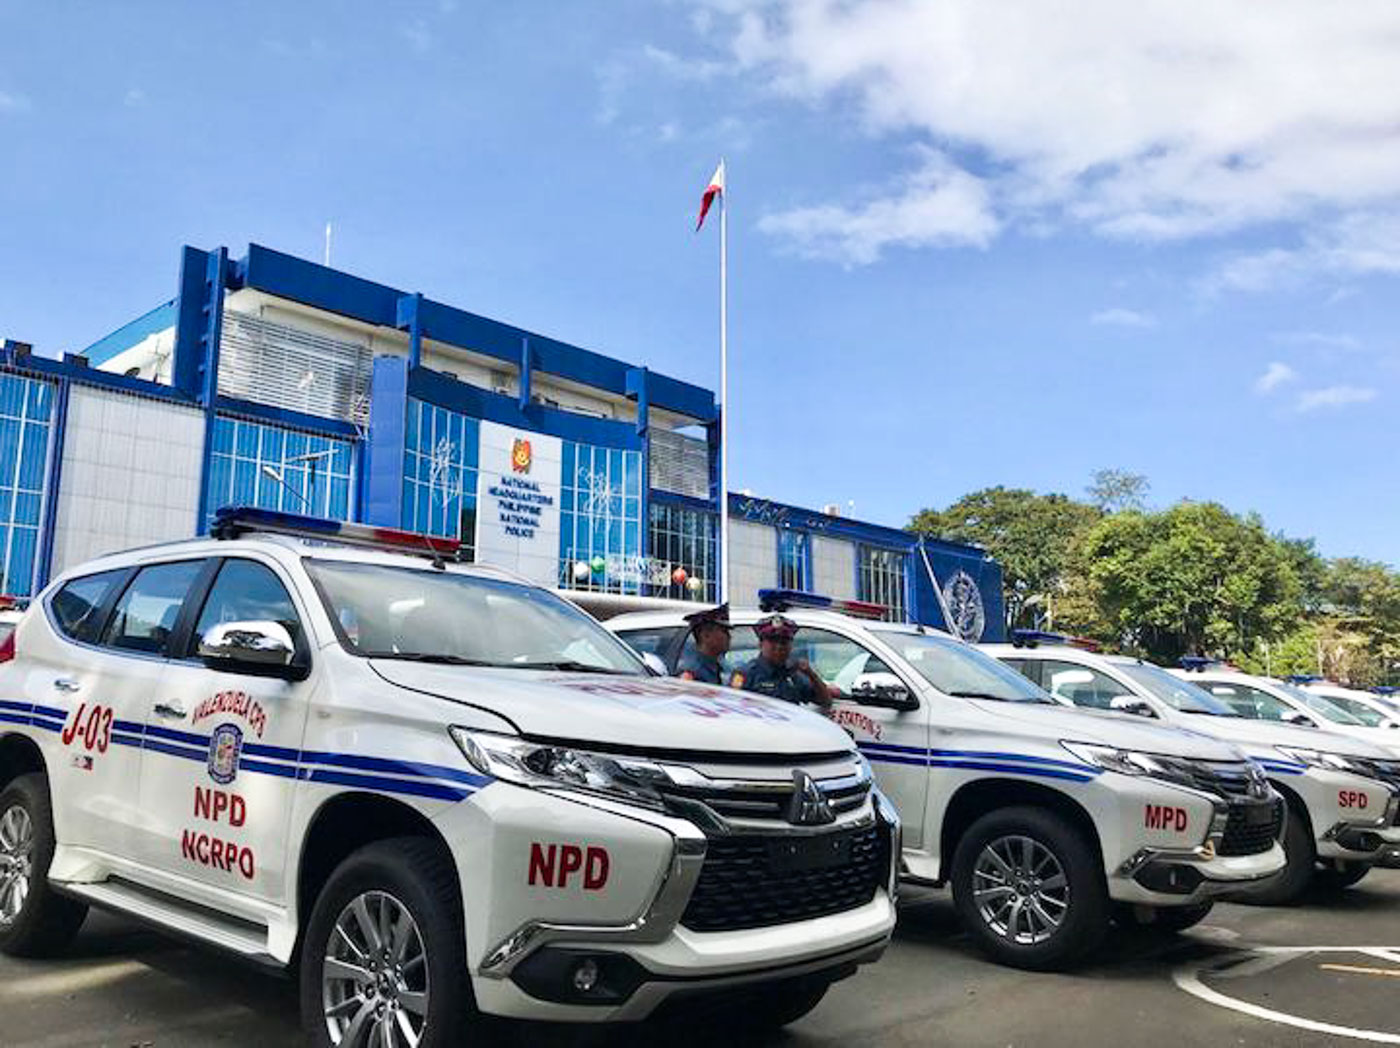 'GOLDEN AGE'. The Japanese government donates 100 patrol vehicles to the Philippine National Police. All photos by Rambo Talabong/Rappler